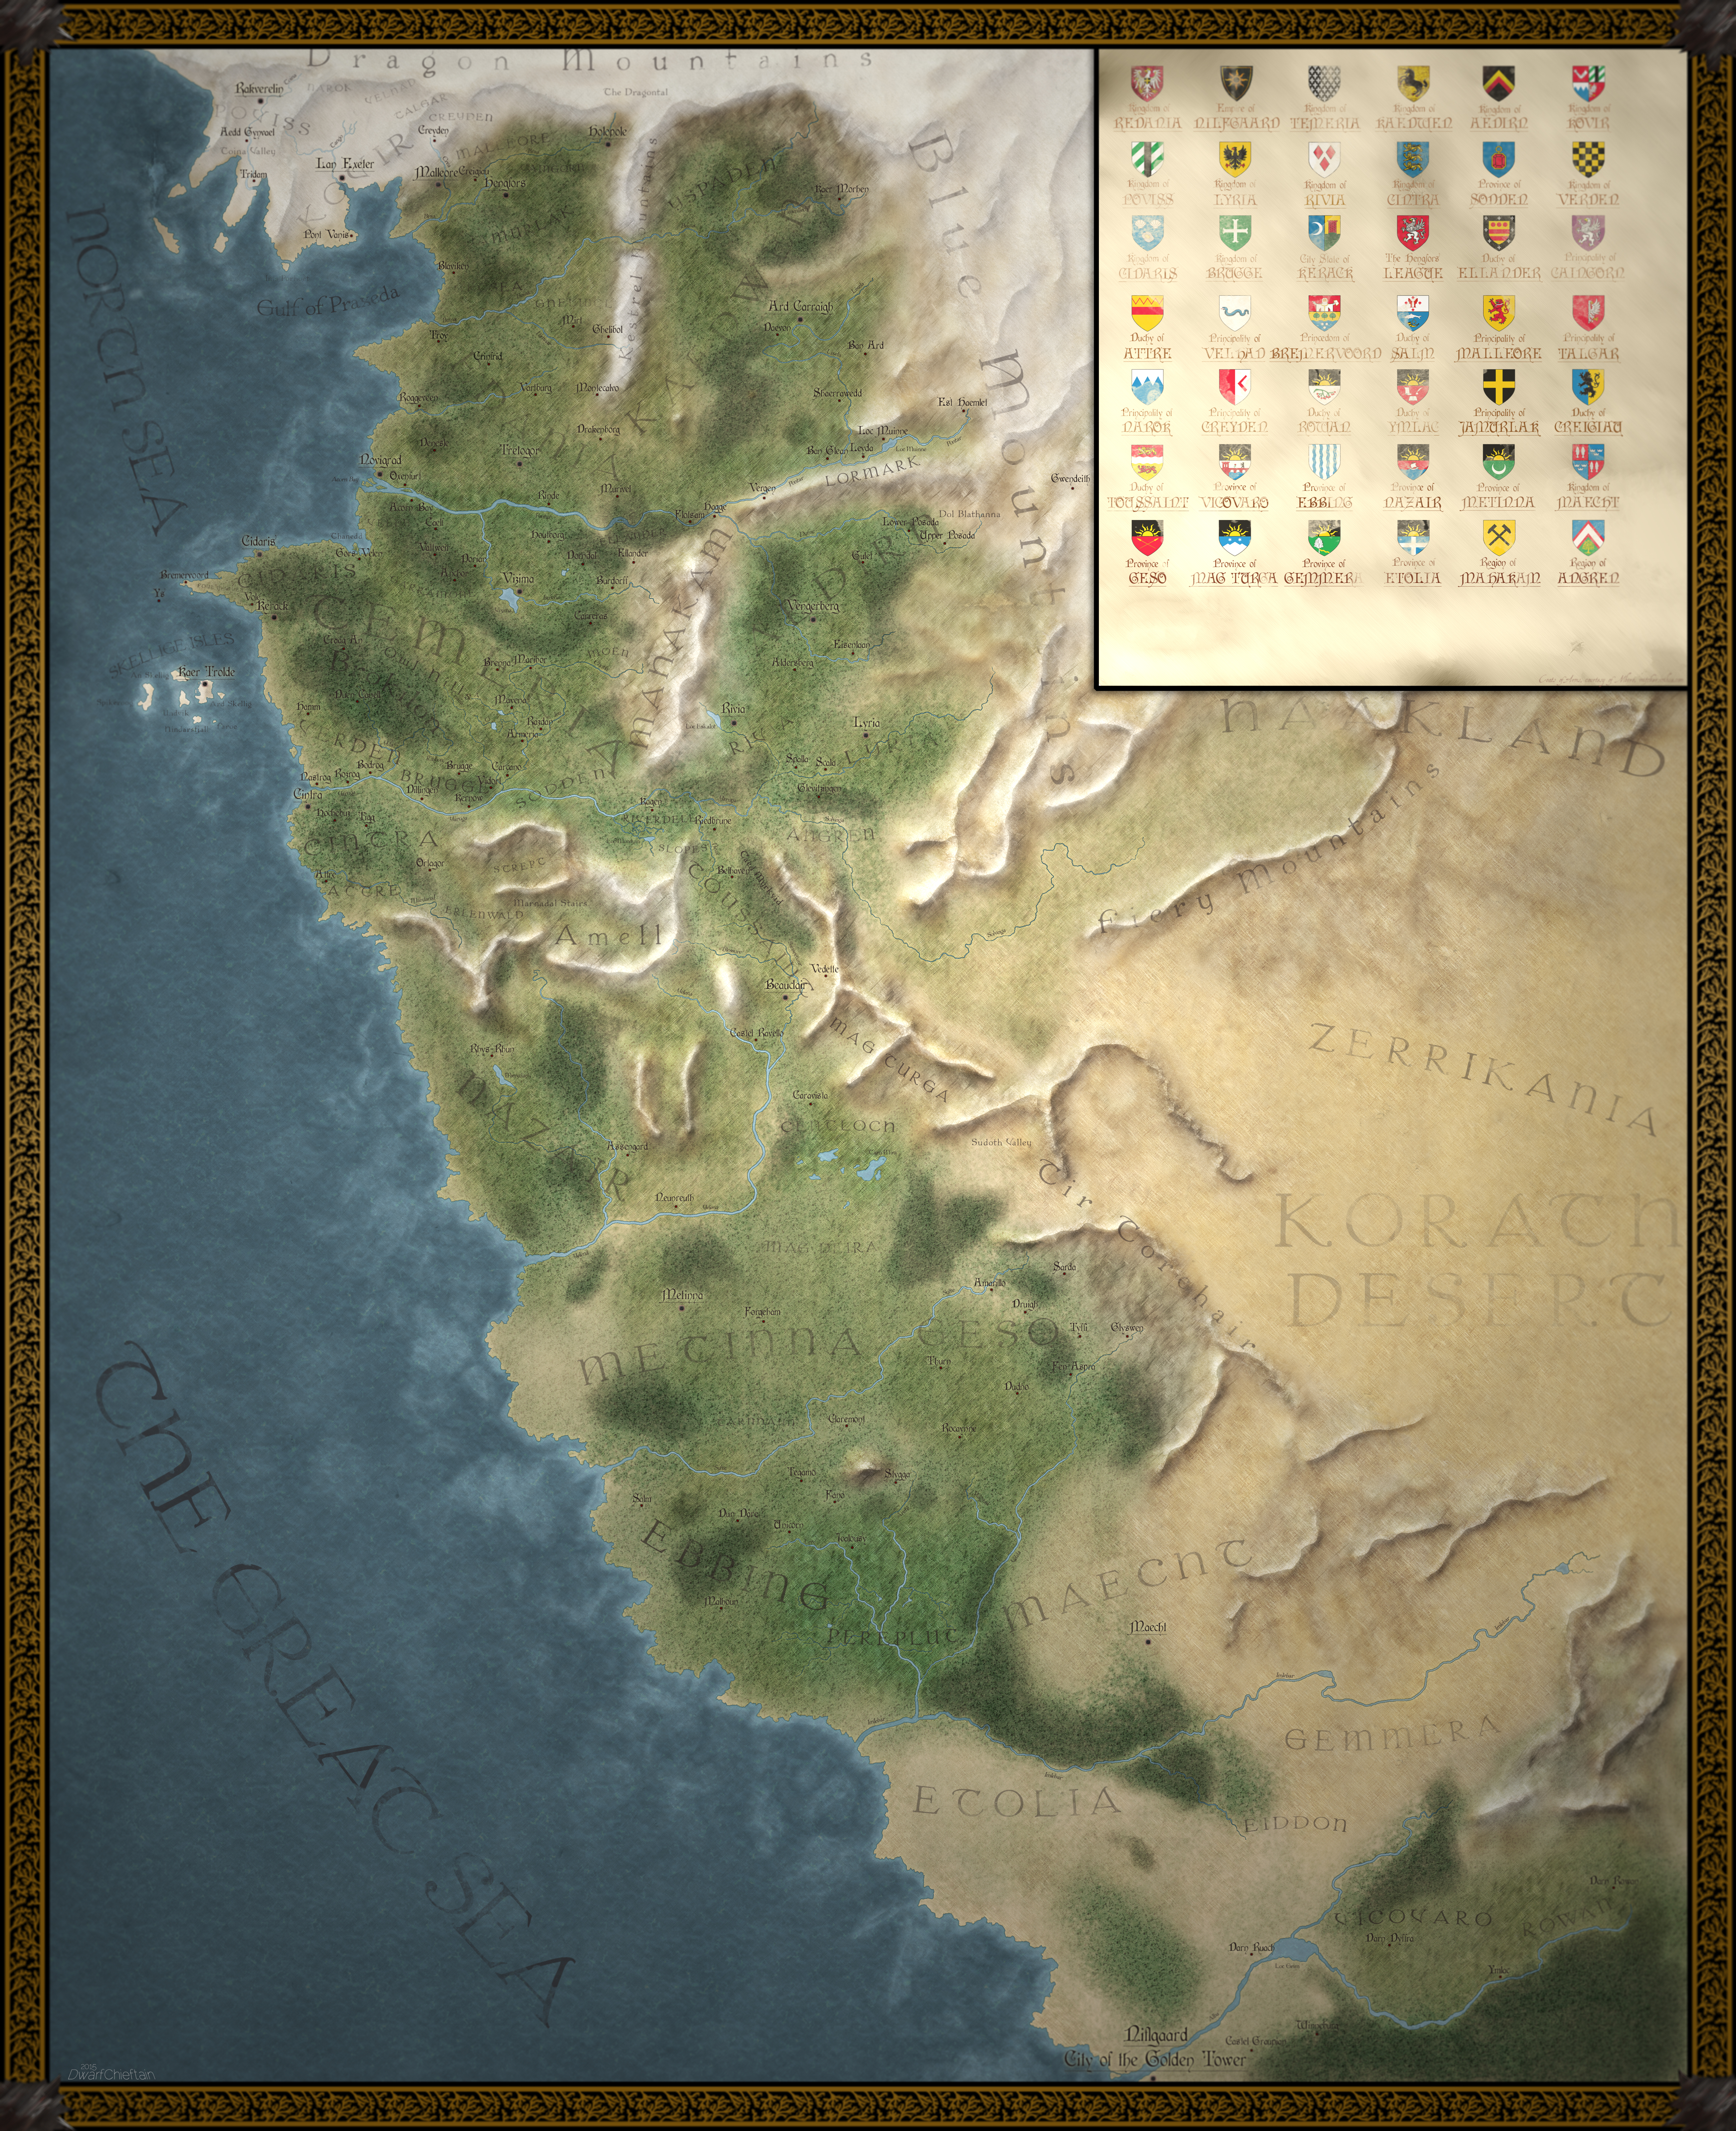 The witcher world map by martynasb on deviantart the witcher world map by martynasb gumiabroncs Image collections